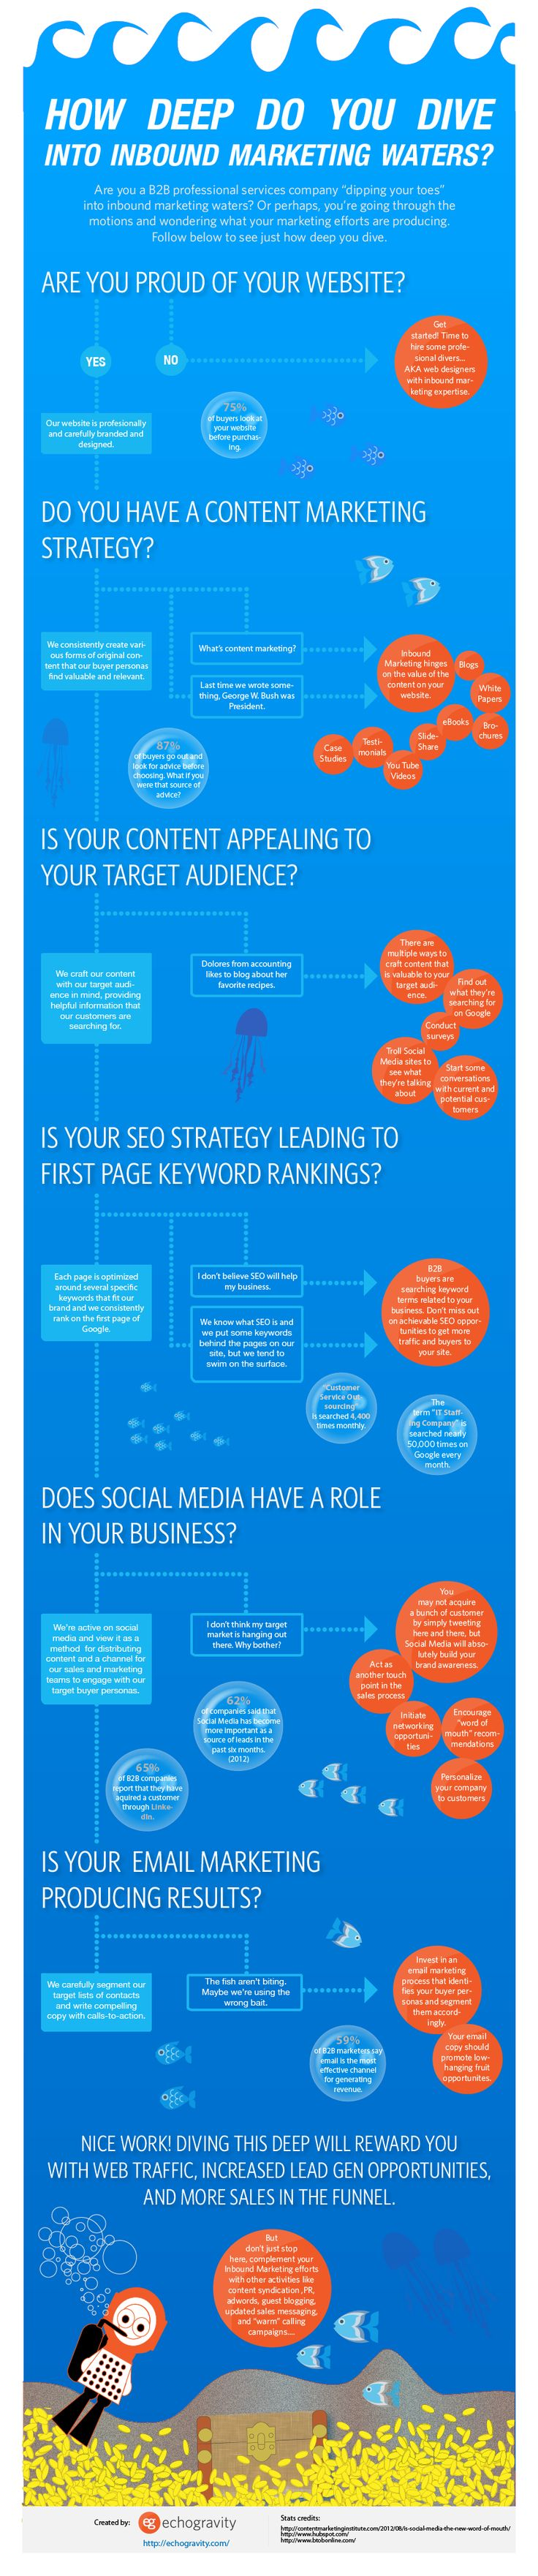 How Deep Do You Dive into Inbound Marketing Waters? [Infographic]